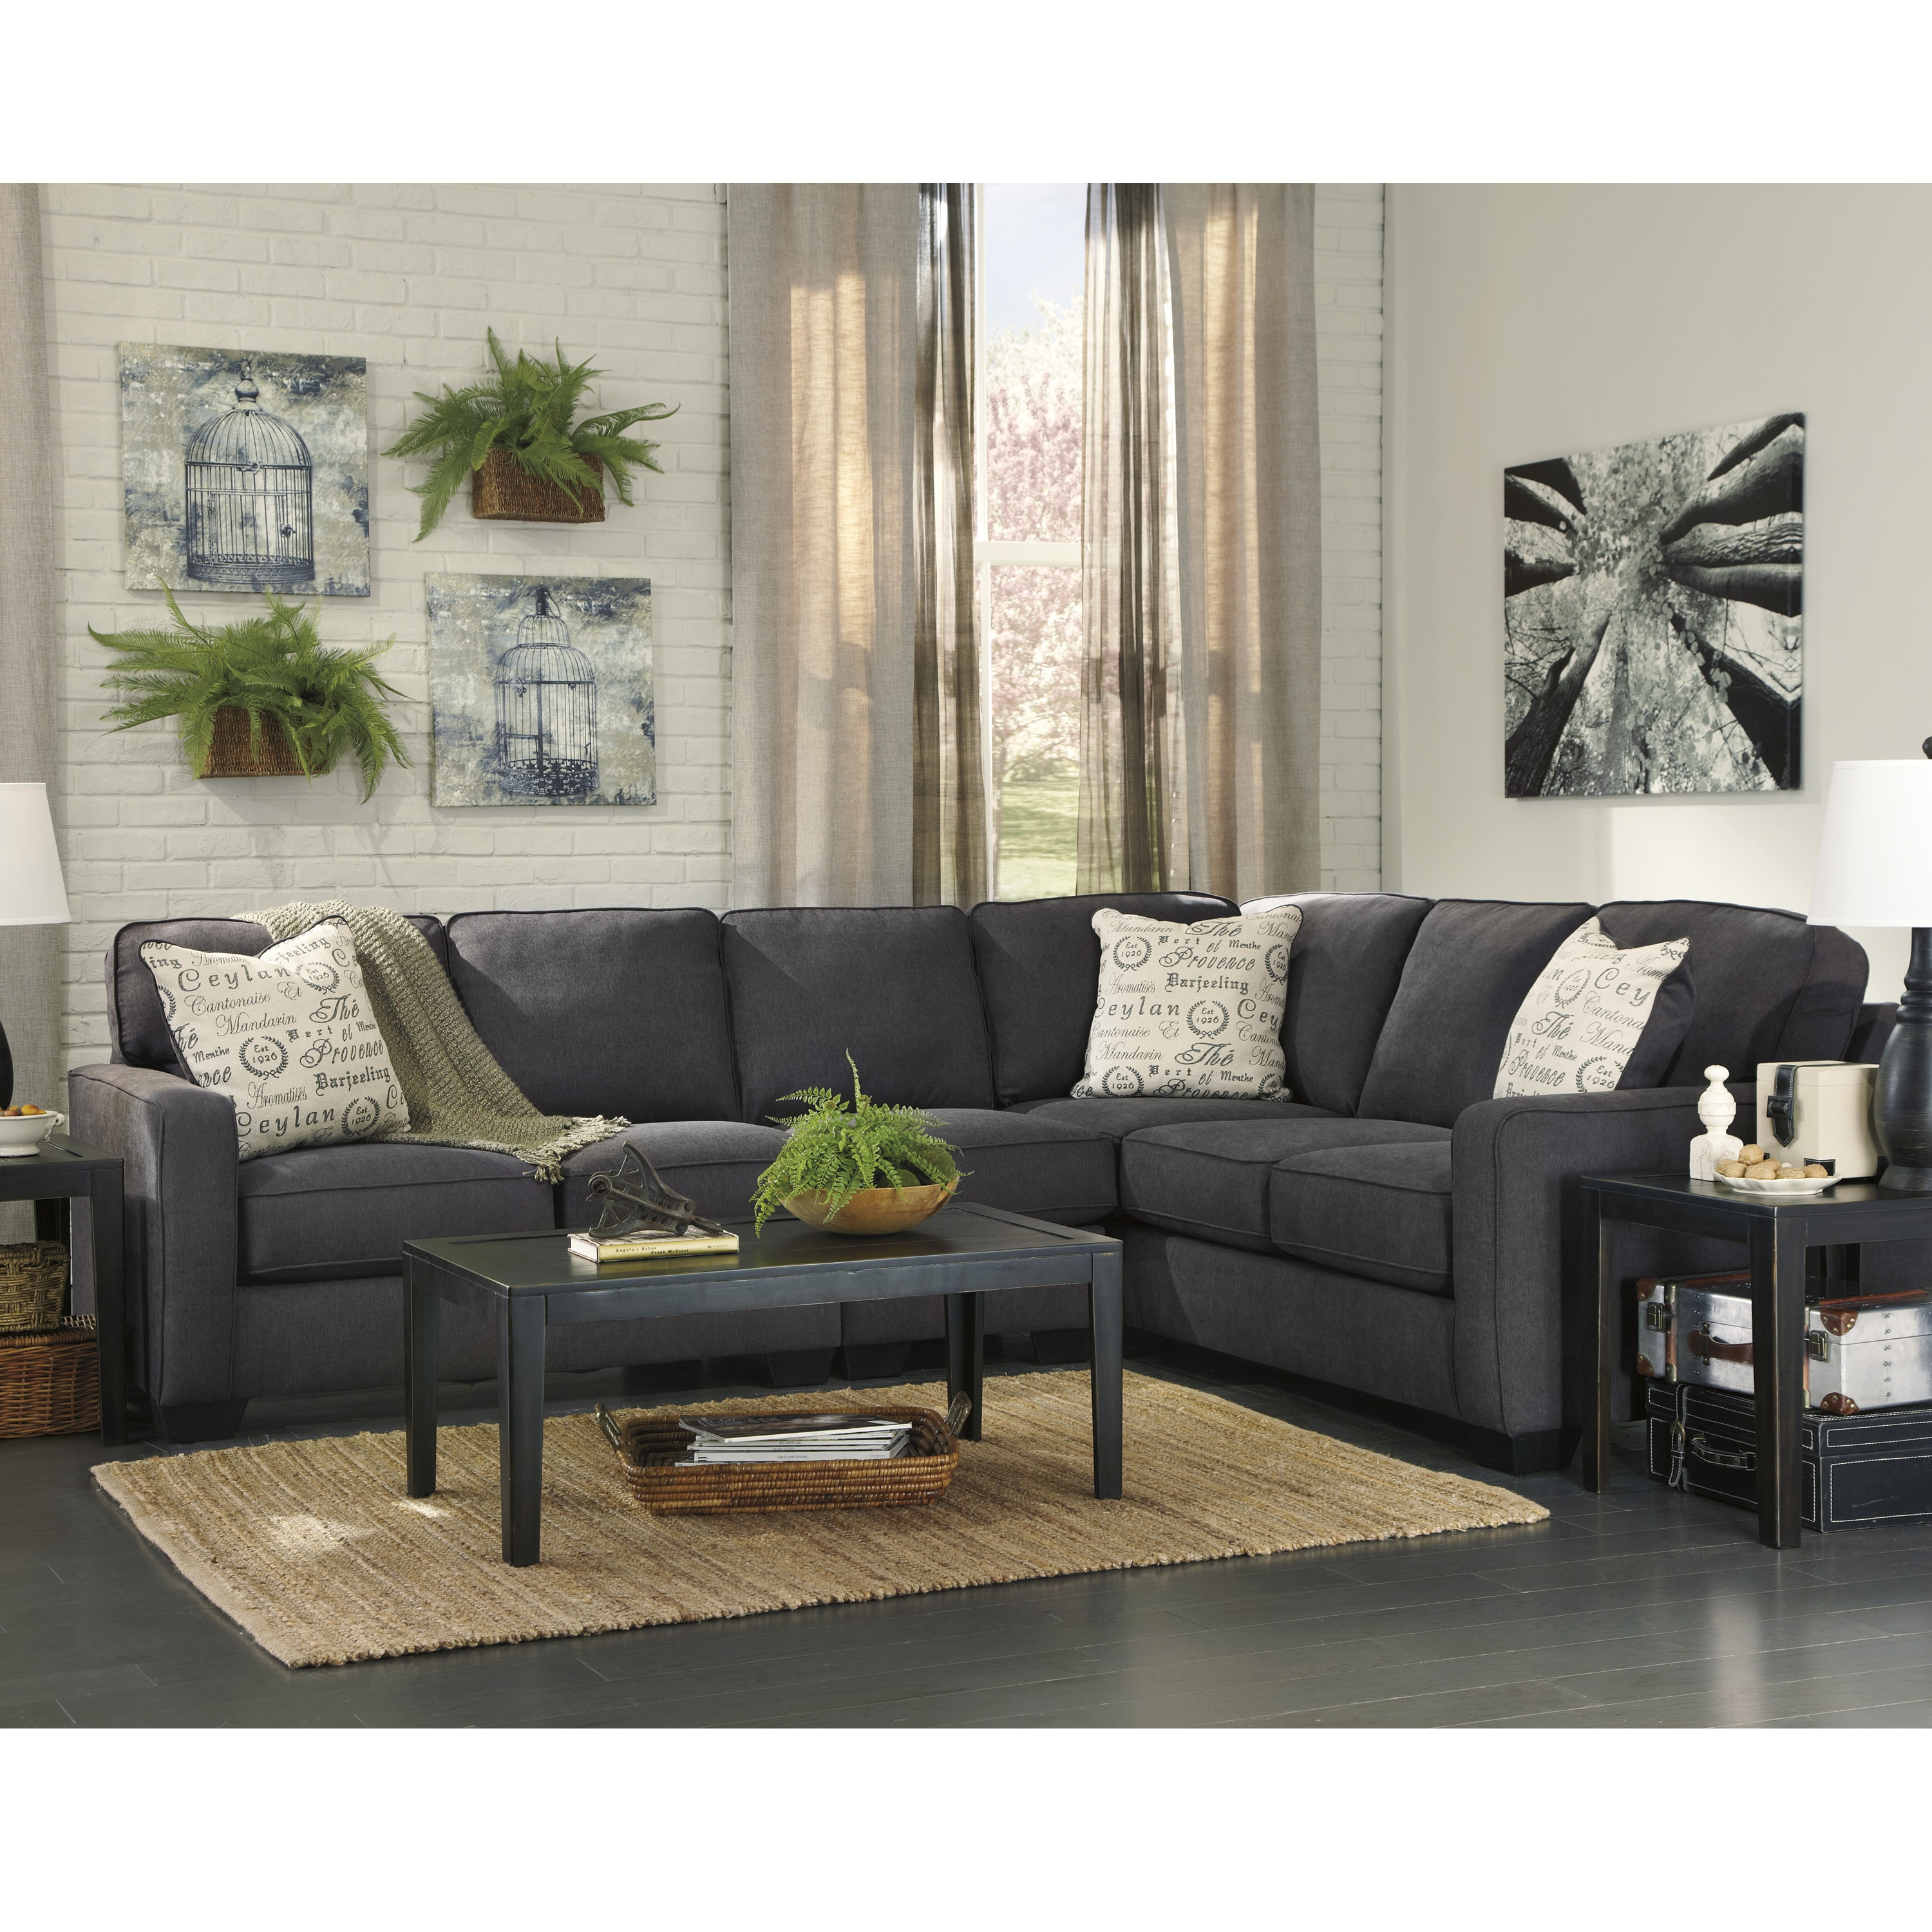 Signature Design By Ashley Alenya 3 Piece Raf Sofa Sectional In Microfiber Free Shipping Today 15949880